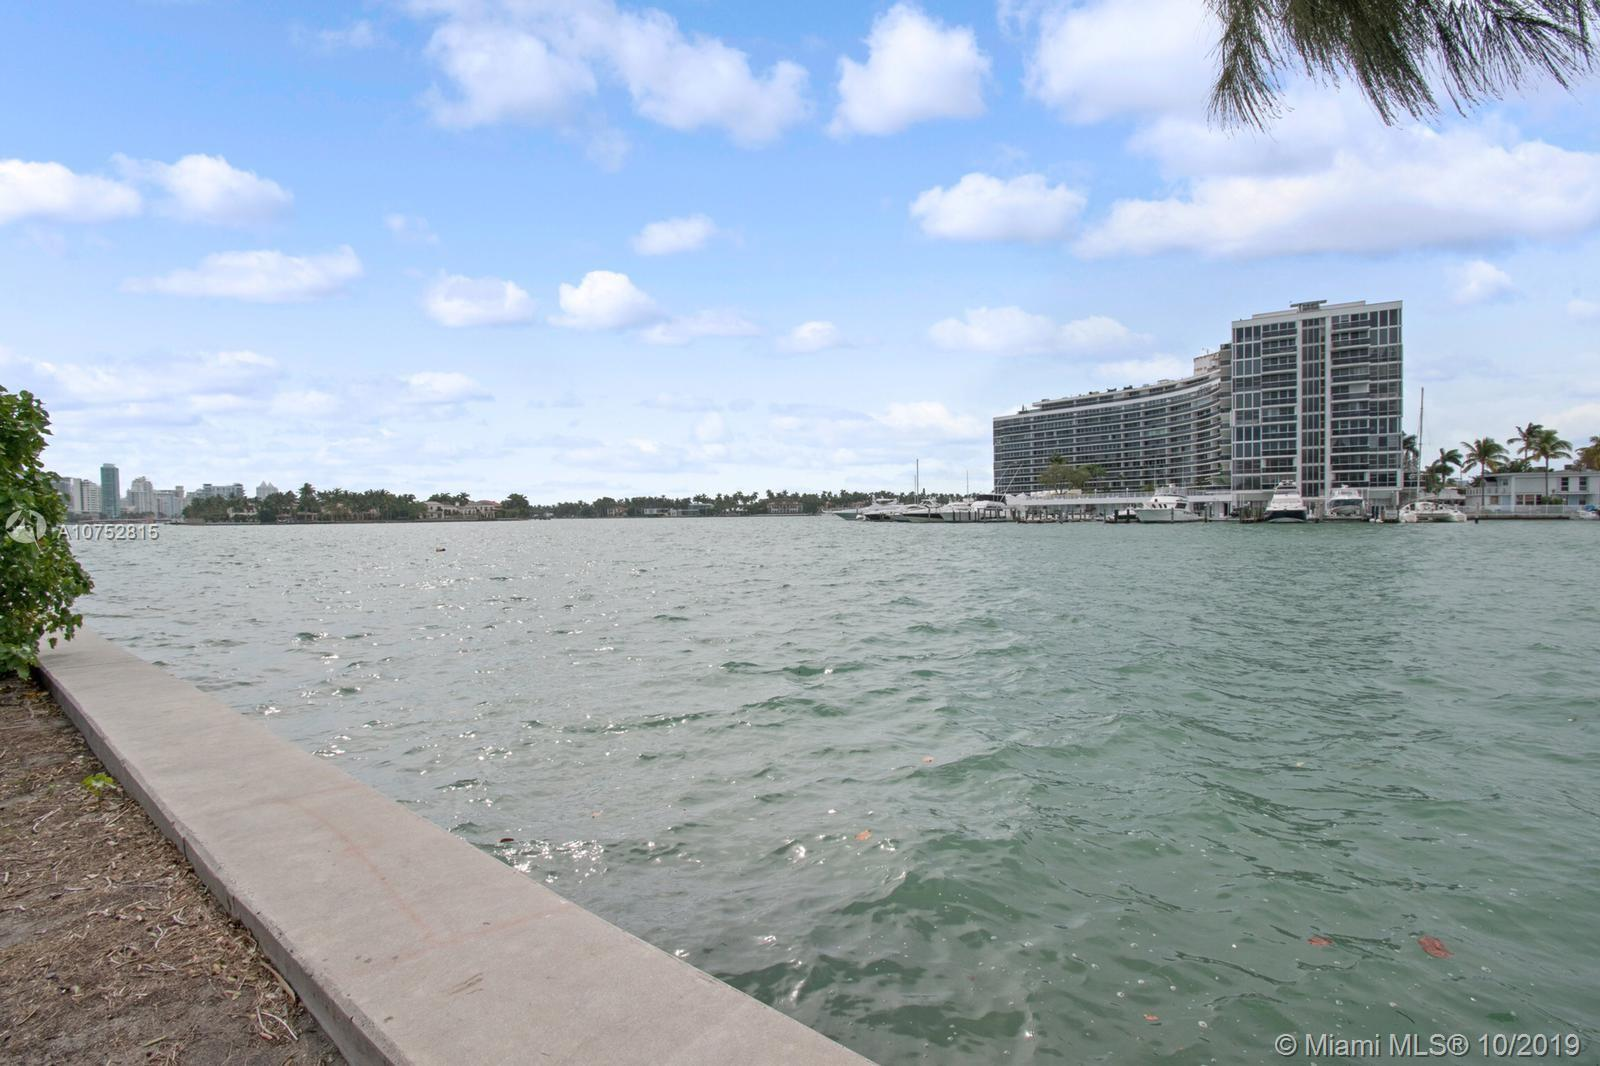 6915 Indian Creek Dr # 11, Miami Beach, Florida 33141, 1 Bedroom Bedrooms, ,1 BathroomBathrooms,Residential Lease,For Rent,6915 Indian Creek Dr # 11,A10752815